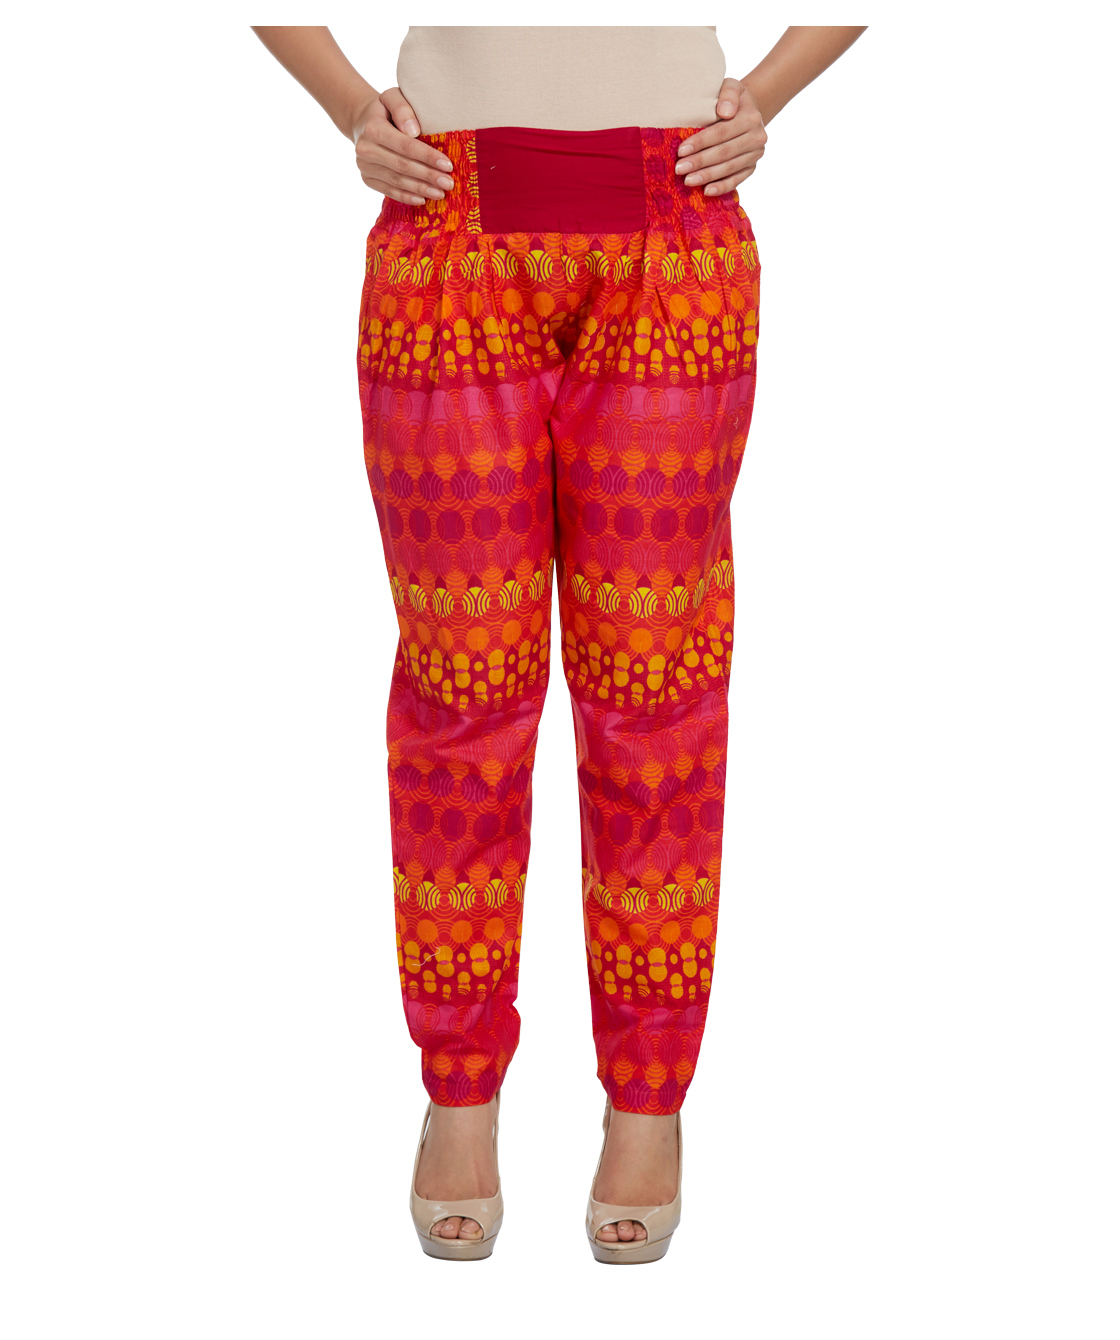 ENAH fusion style pant